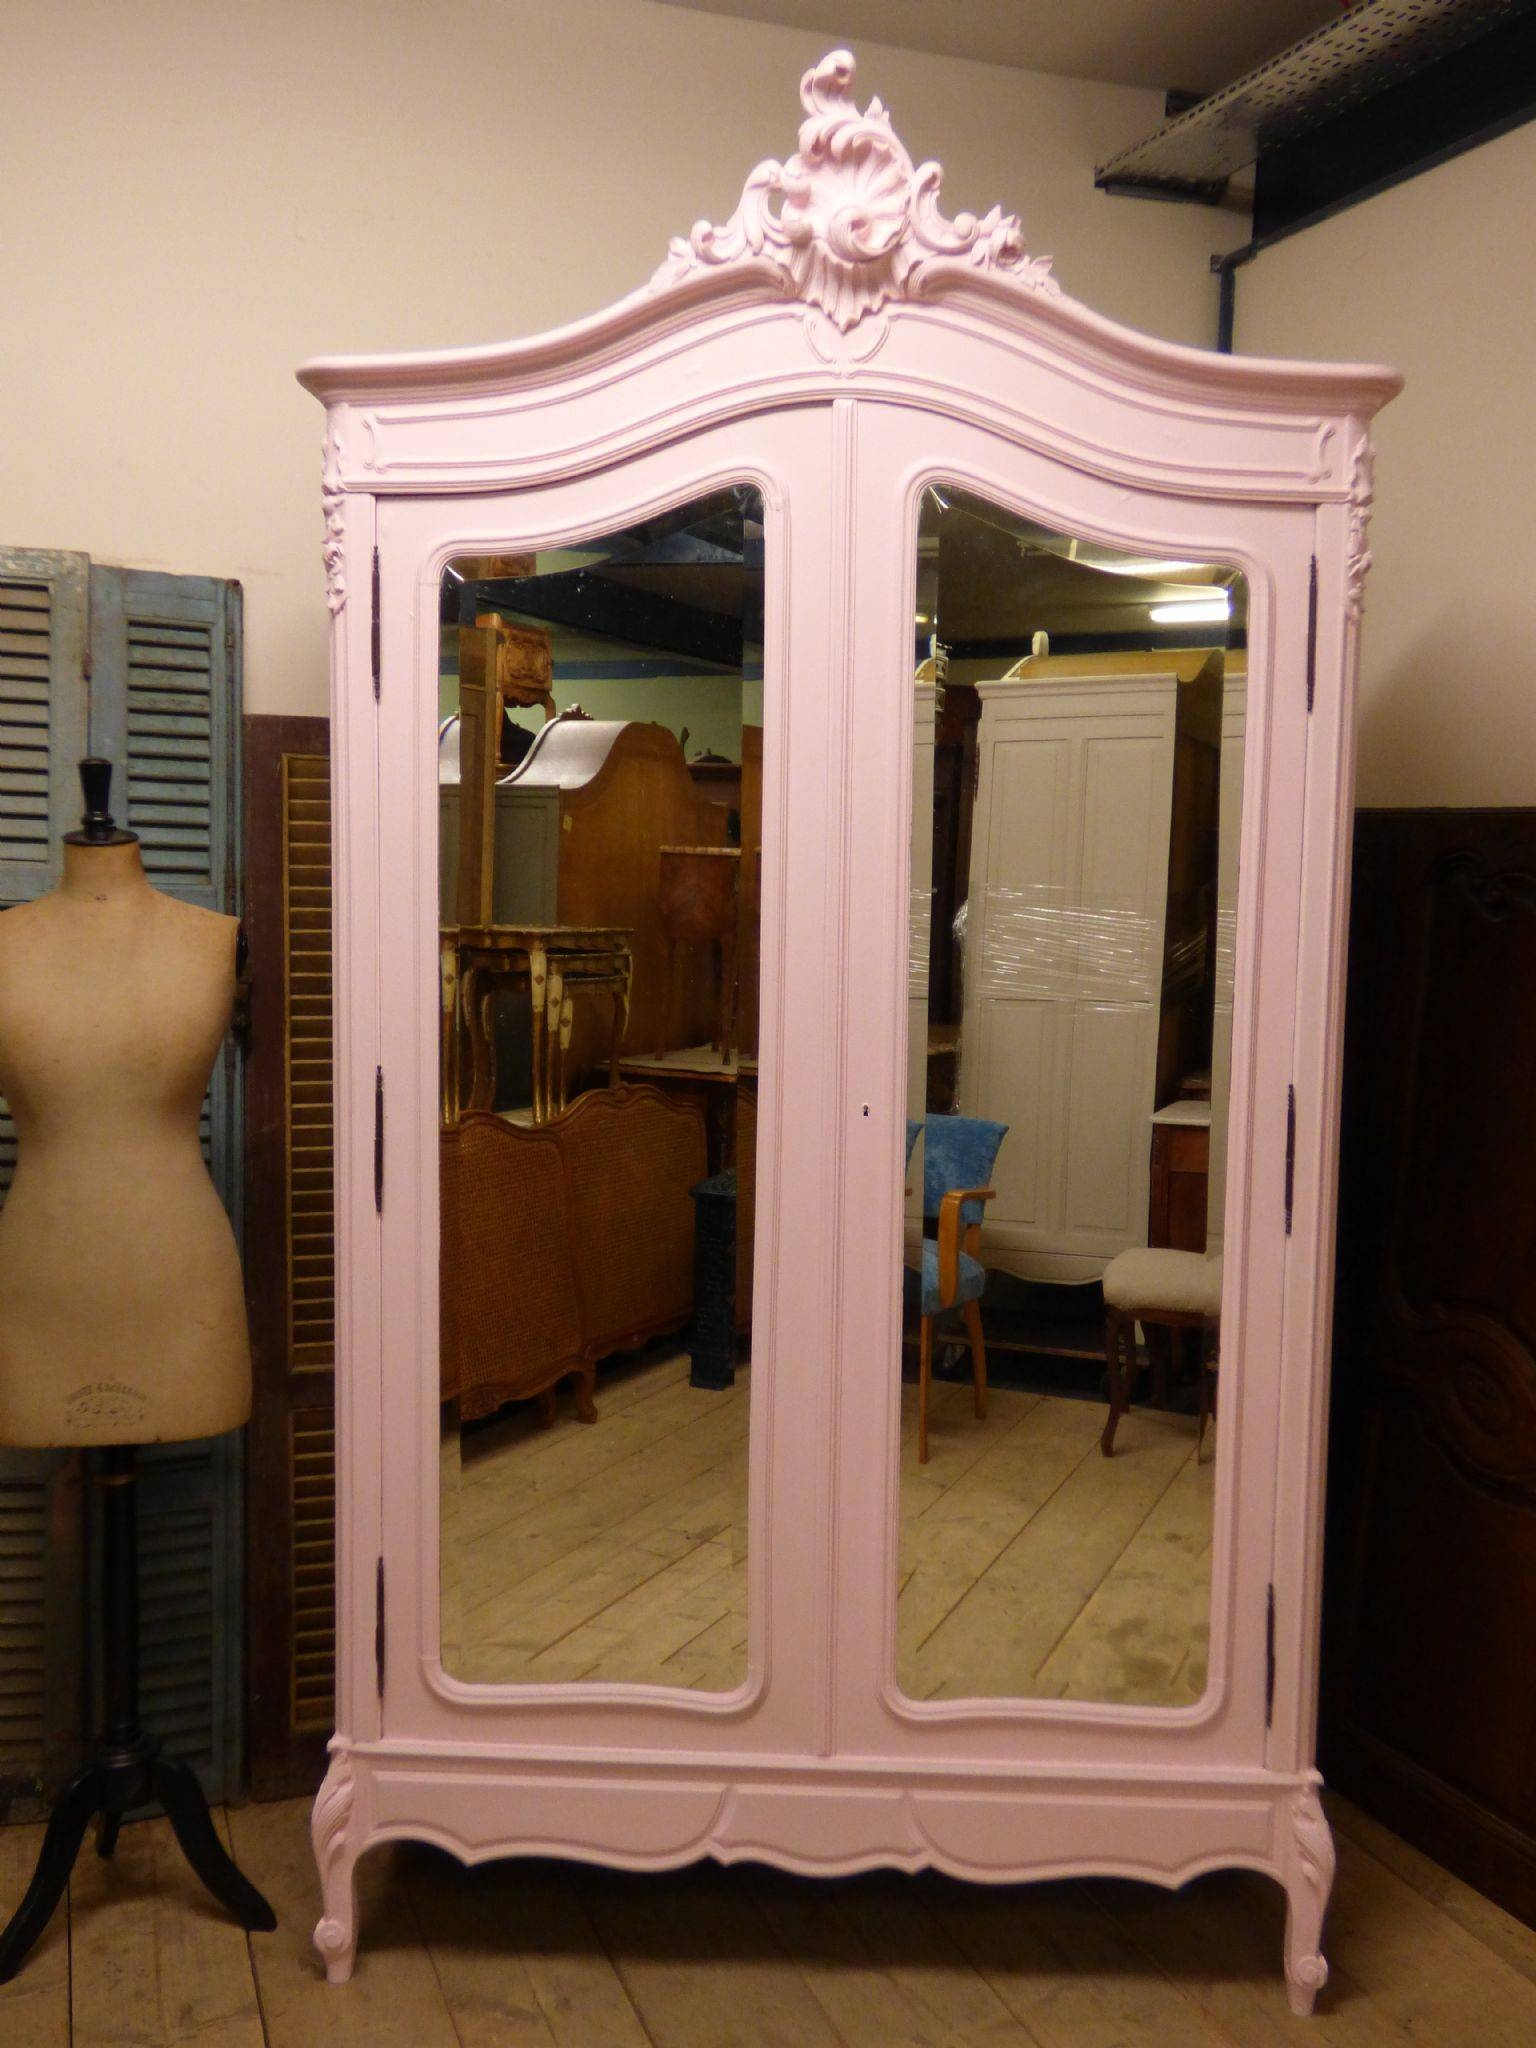 Antique French Armoire Bookcase - French Wardrobe - Hc09 - The regarding Vintage French Wardrobes (Image 2 of 15)